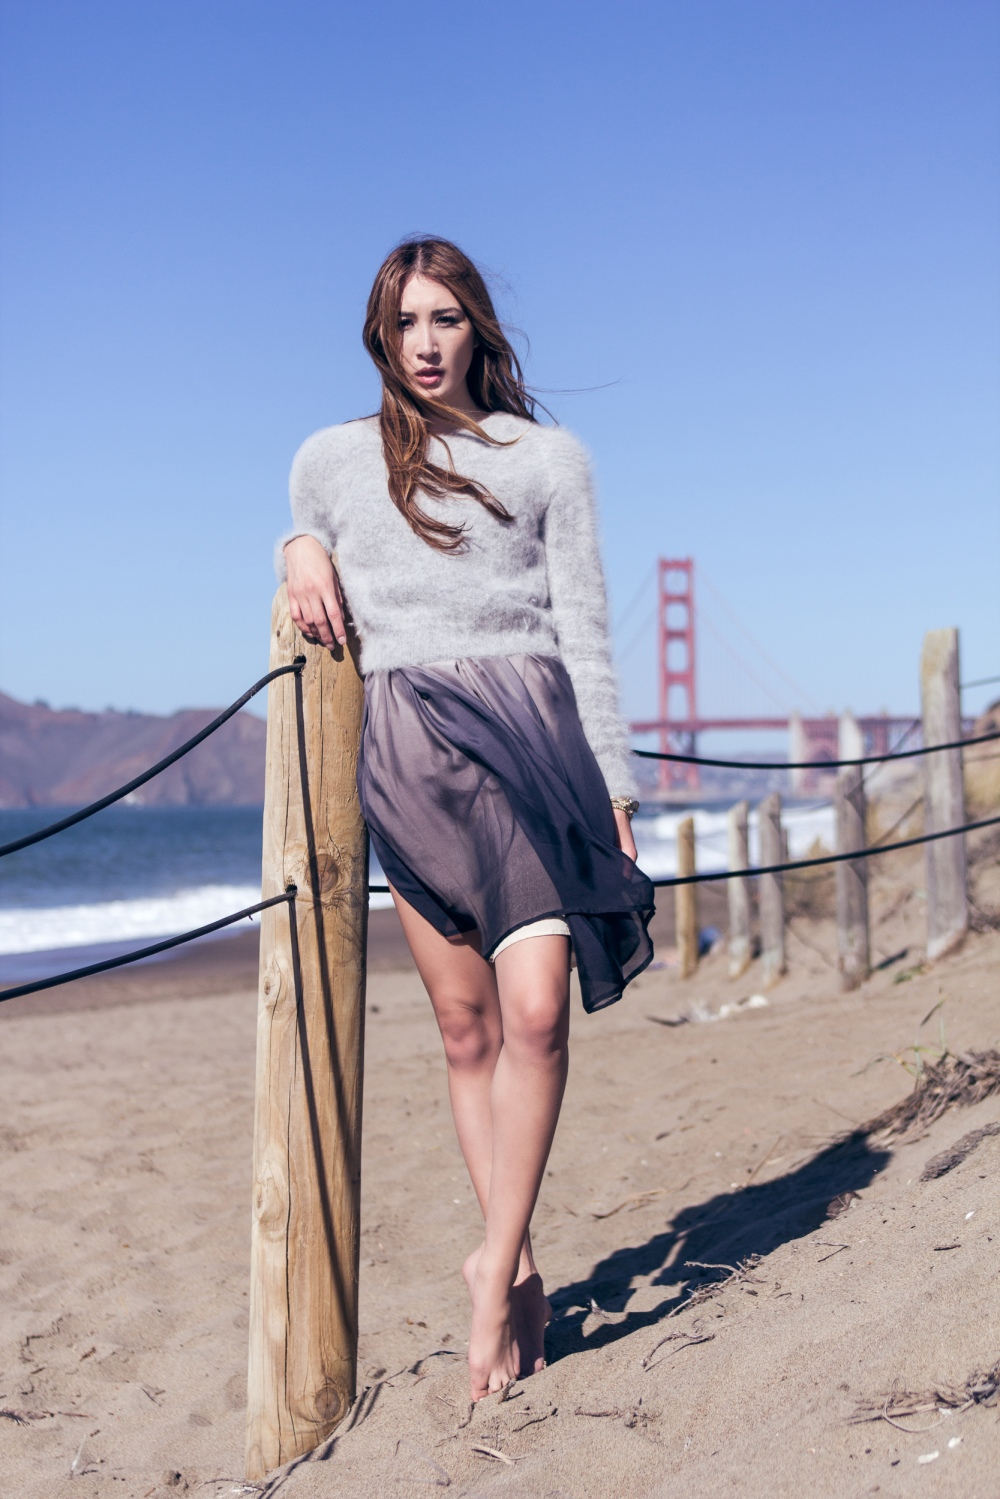 Winter Tide Alyssa Nicole Ombre Dress 6